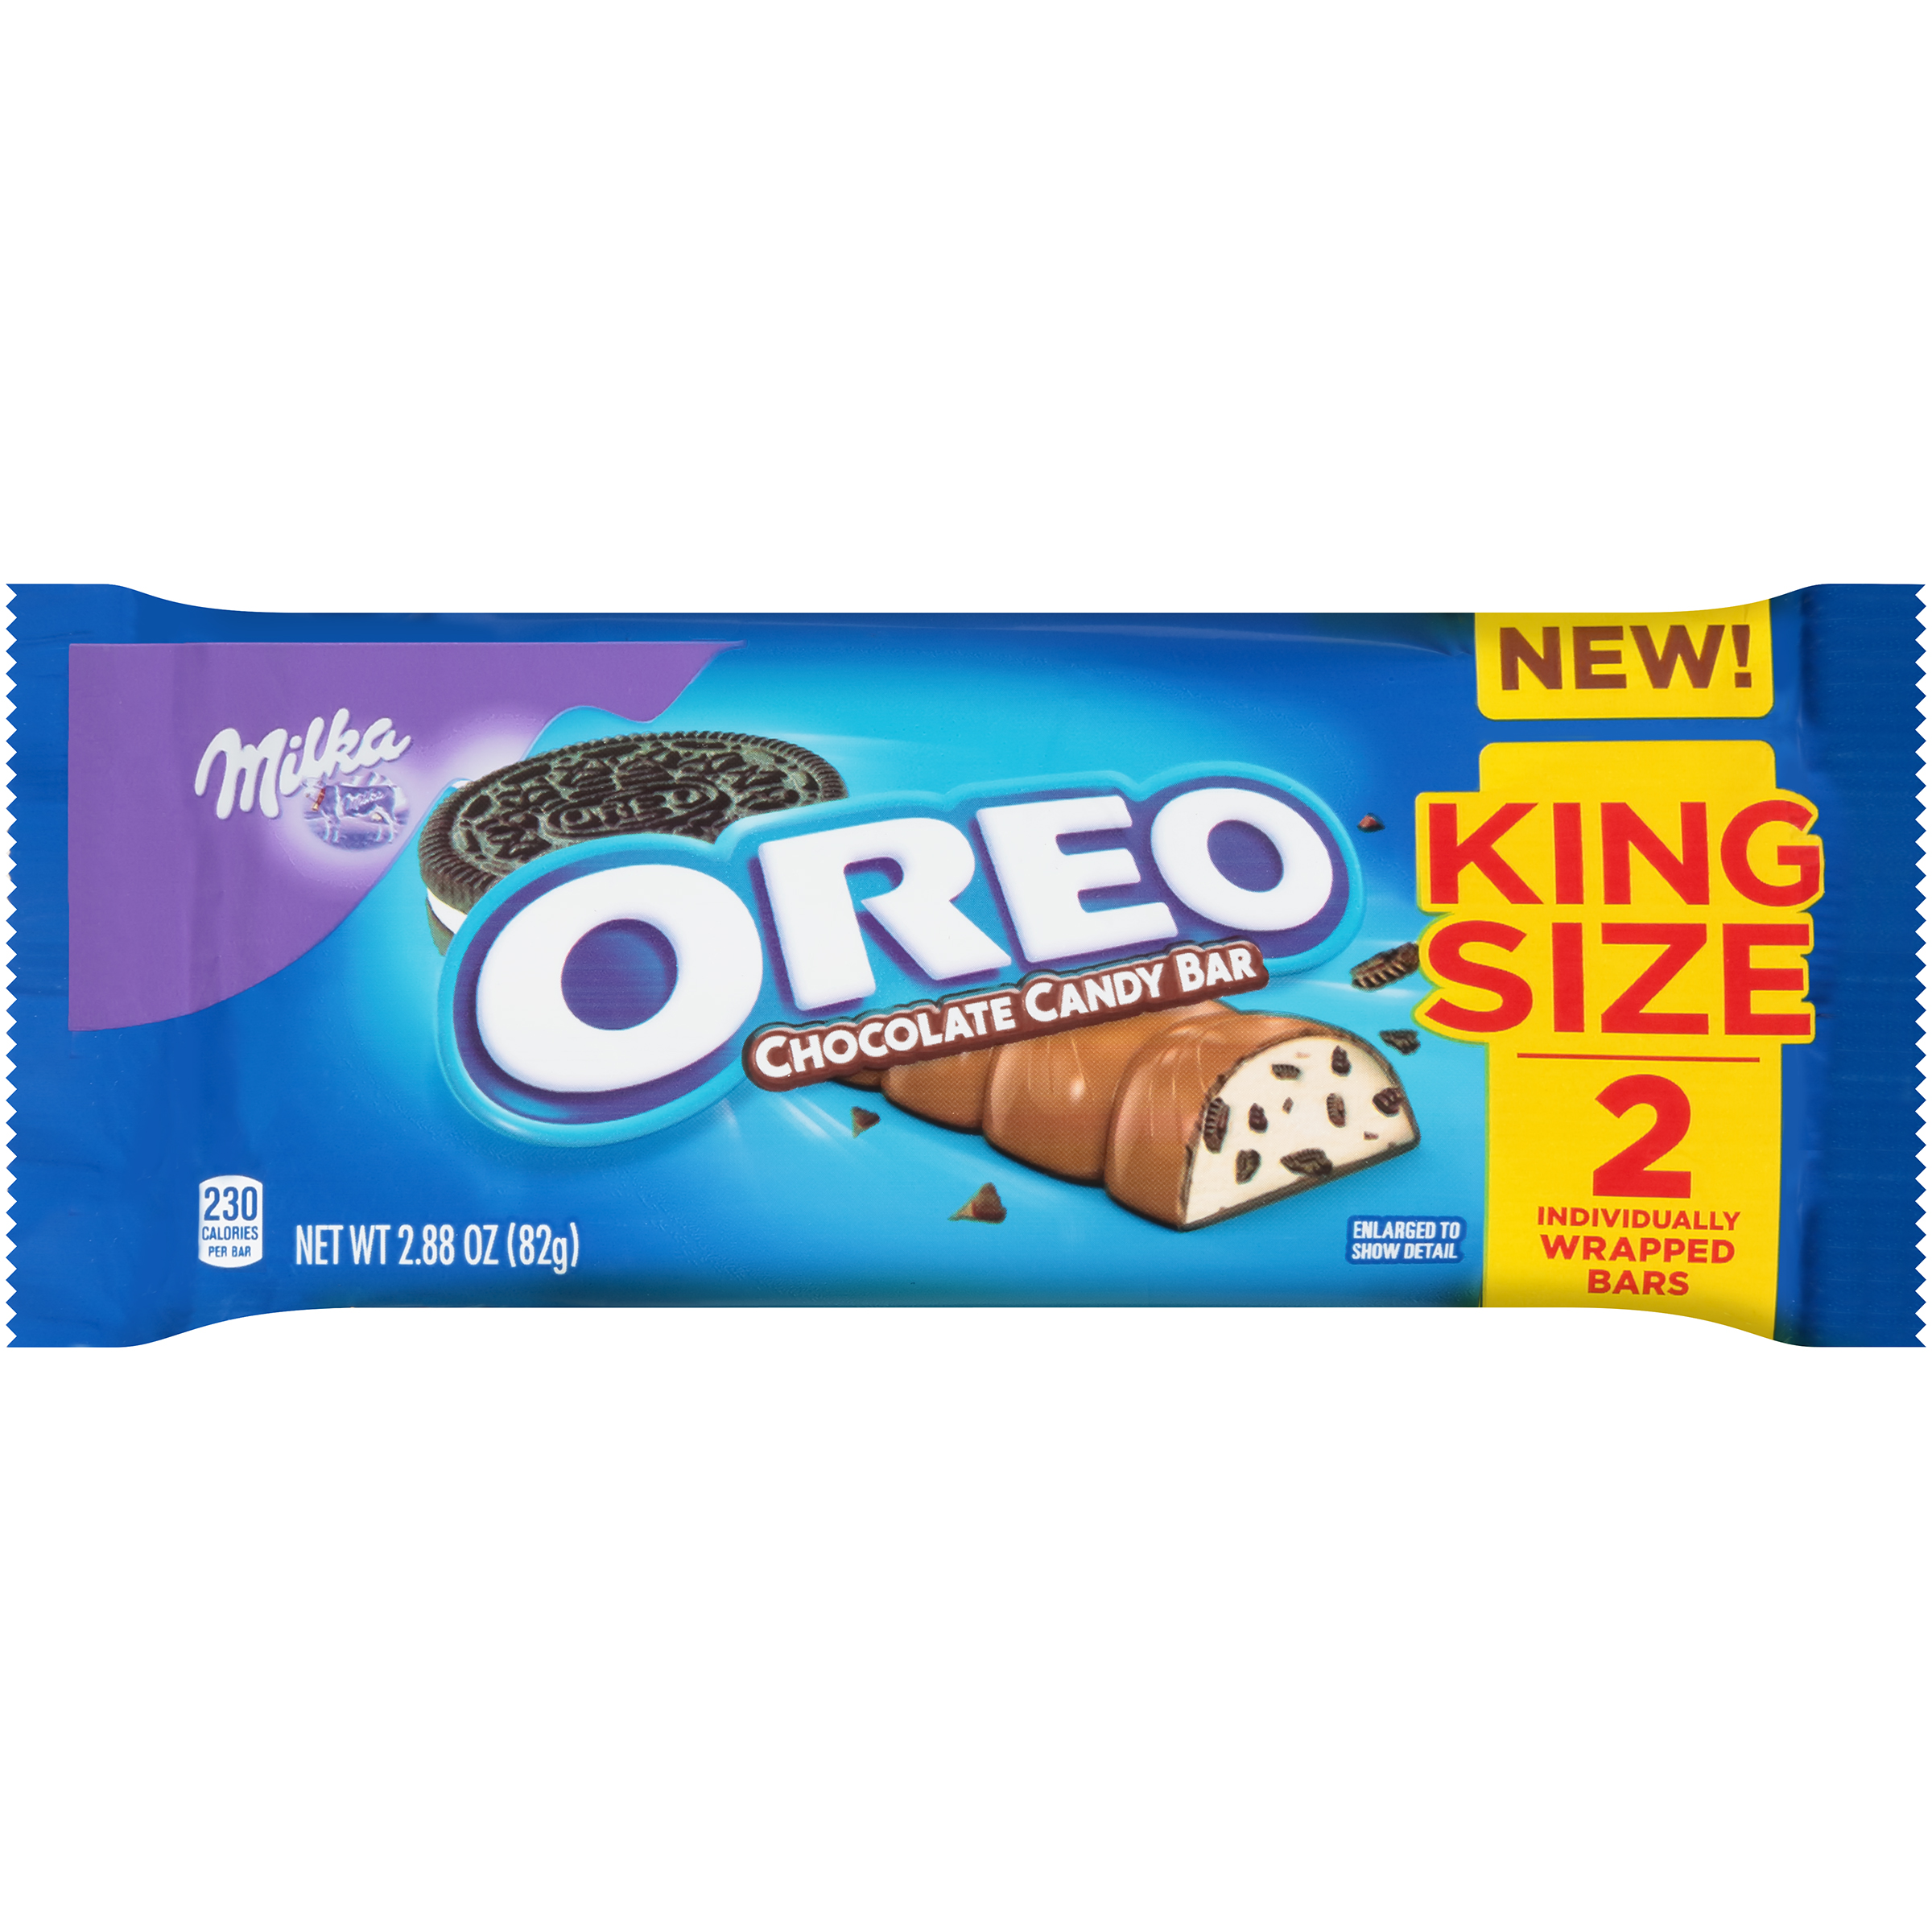 Milka oreo chocolate candy bar king size - 2 ct